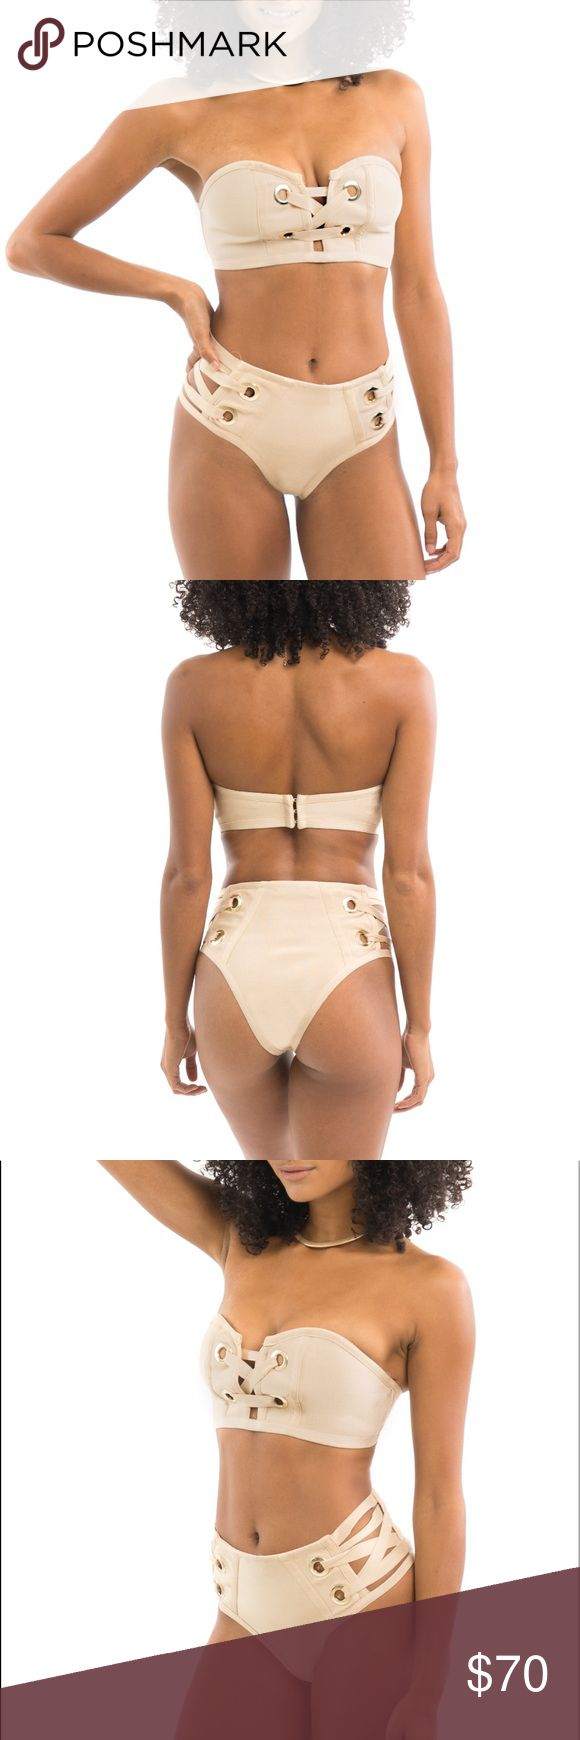 Nude Two-Piece Bandage Baithing suit - Swimwear As seen. No trades. Brand new condition. Nude Bandage Two-Piece Baithing Suit  * Beige with gold detailing * Bandage fabric * Bathing suit/ Swimsuit style * Side cut-out * Front crossing detail * Sweetheart cut * 90% Polyester, 10% Spandex Style Link Miami Swim Bikinis